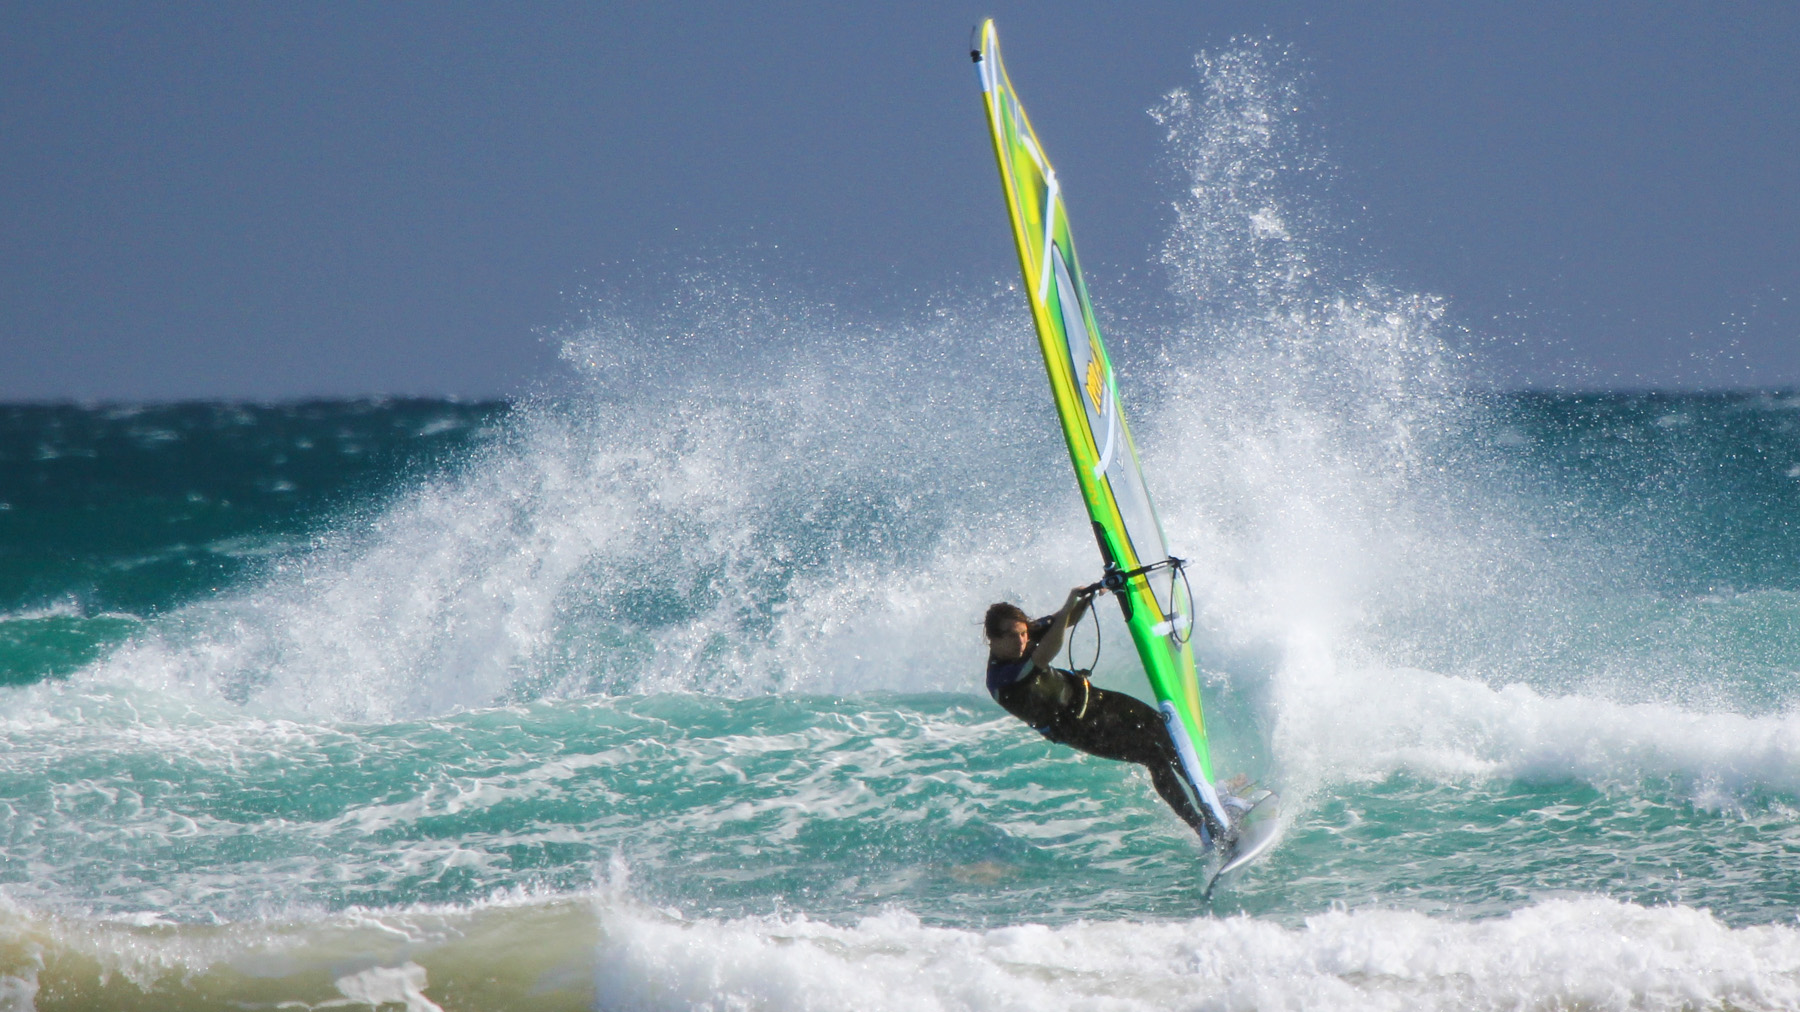 windsurfing long arms at sandy point